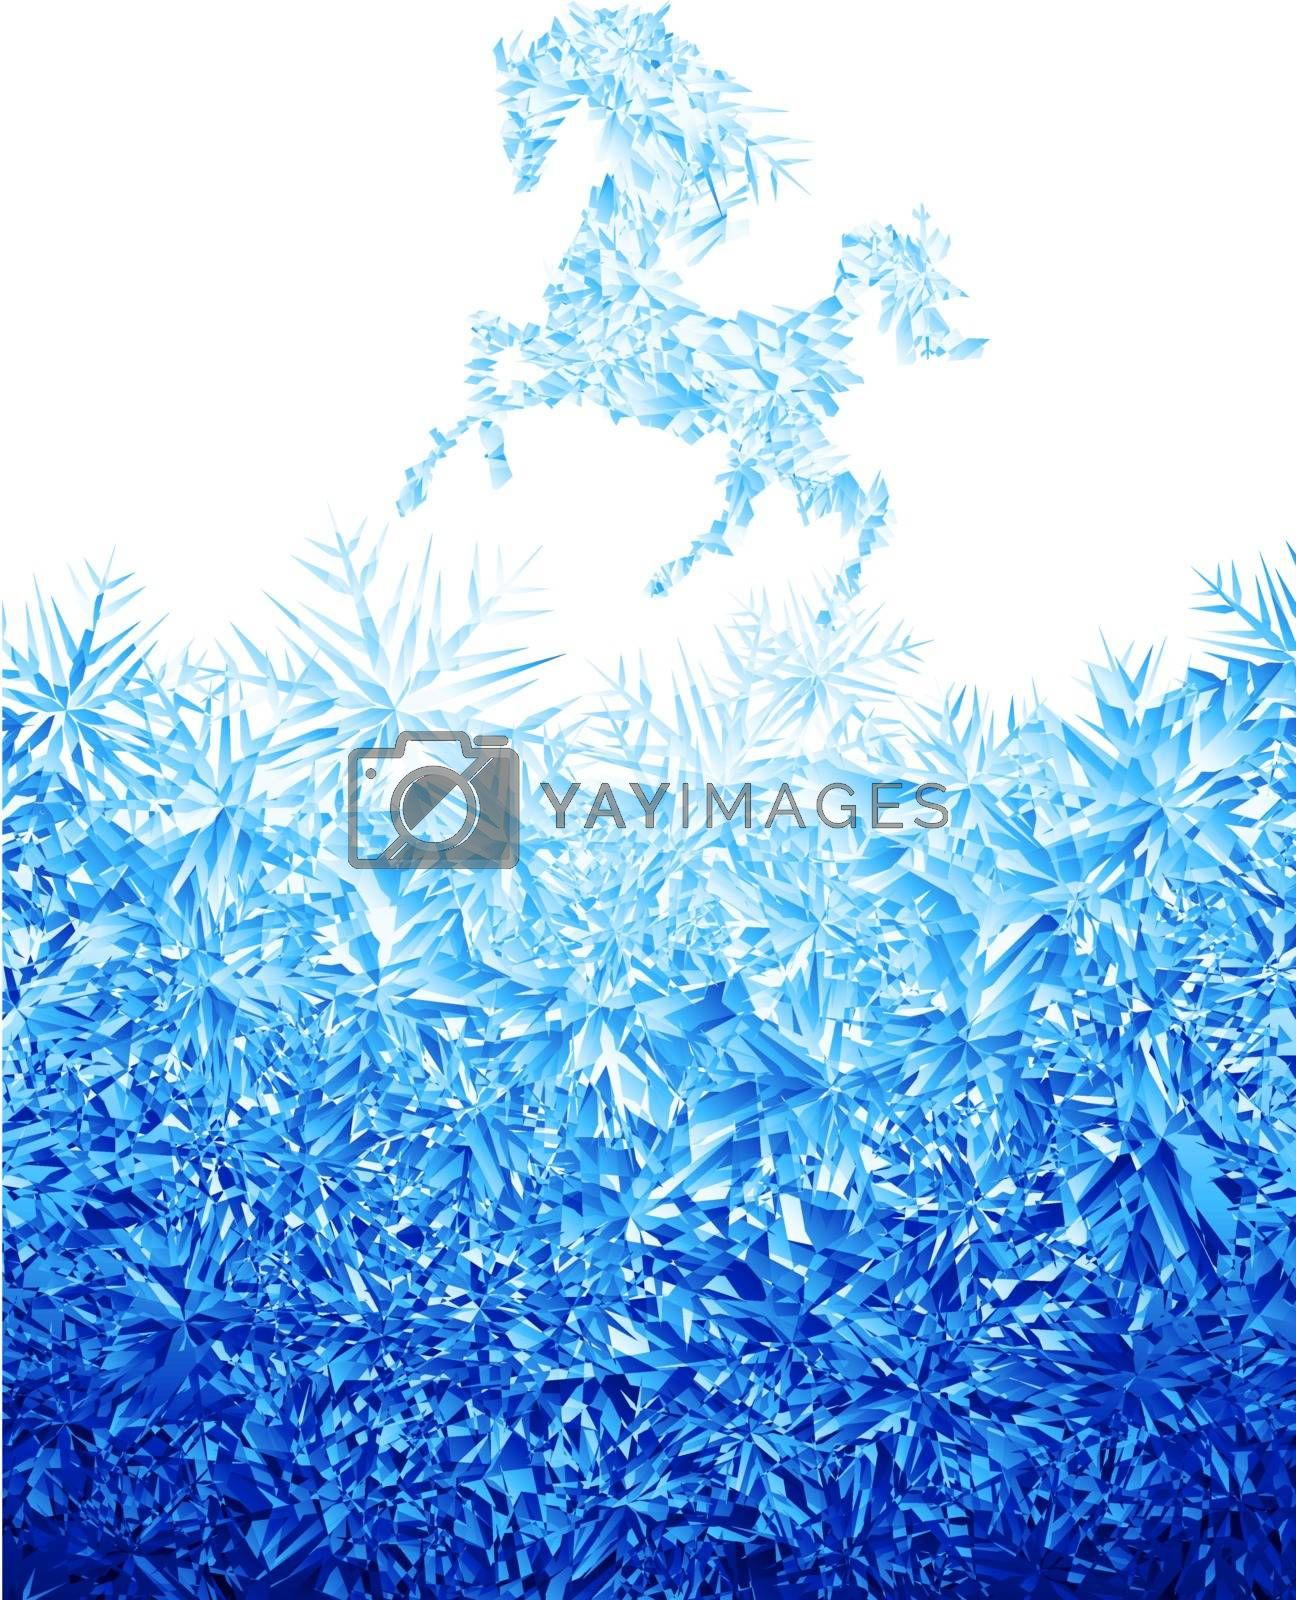 Decorative silhouette horse on ice background. Eps8. RGB. Global colors. Gradients used.